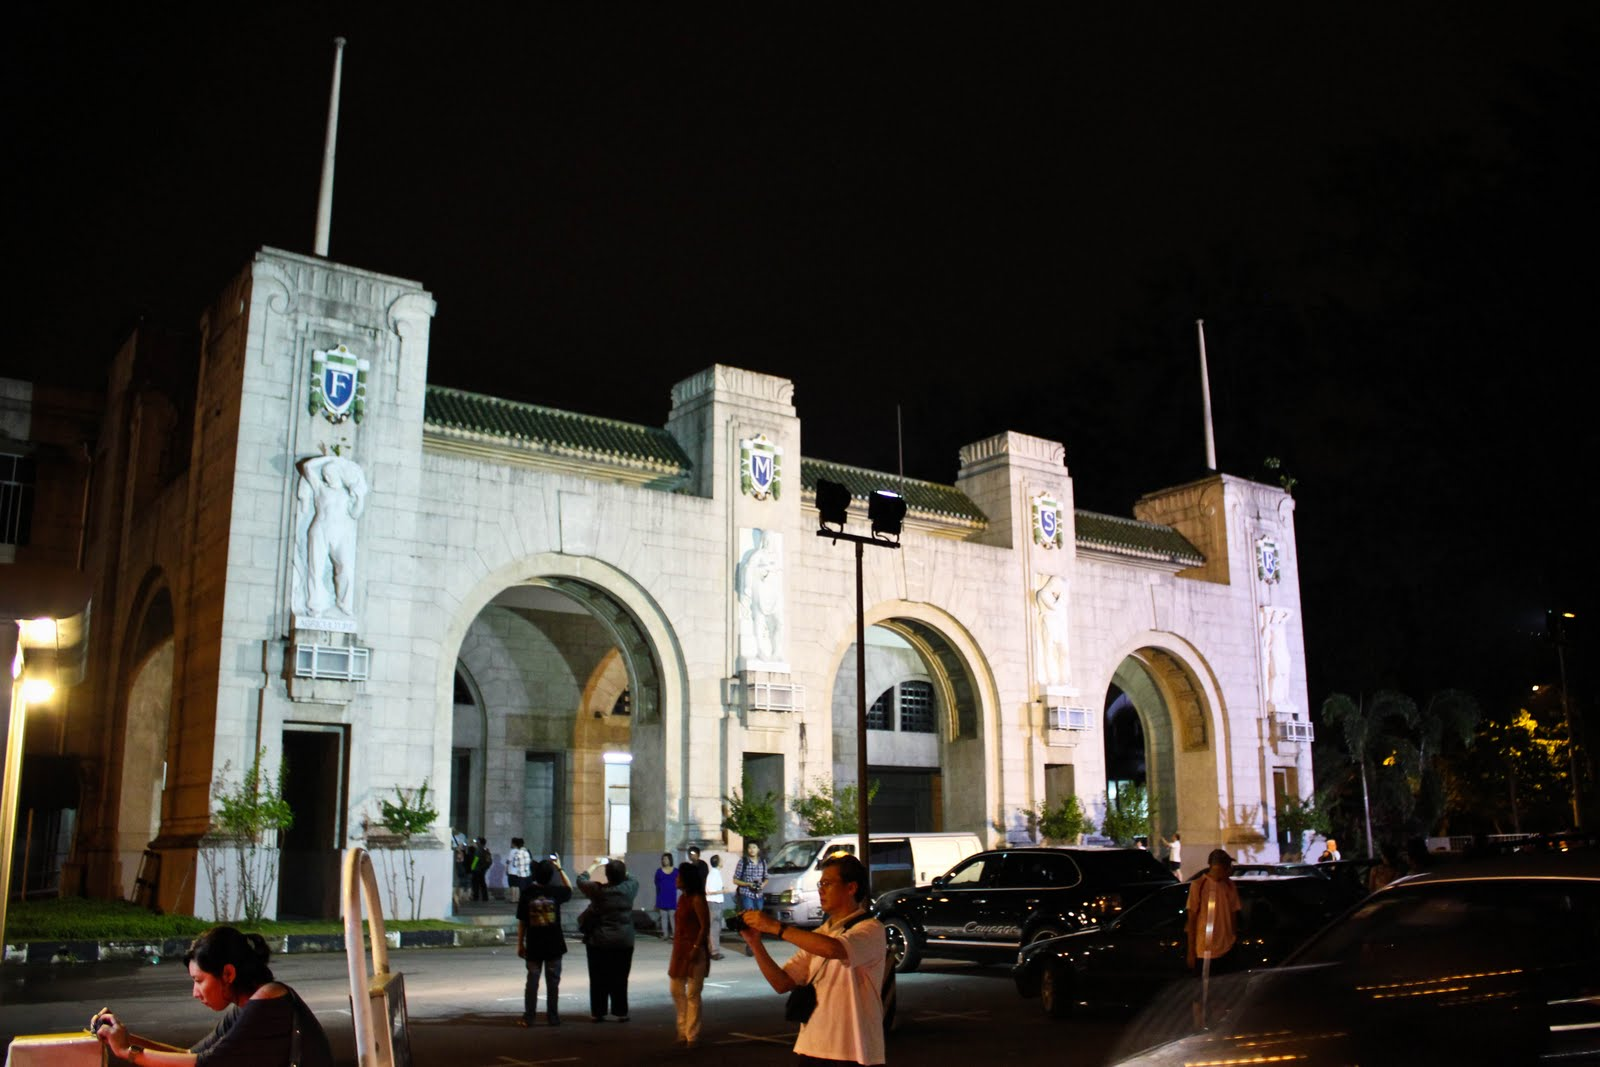 Participating teams are to propose concept designs for the adaptive reuse of the former tanjong pagar railway station